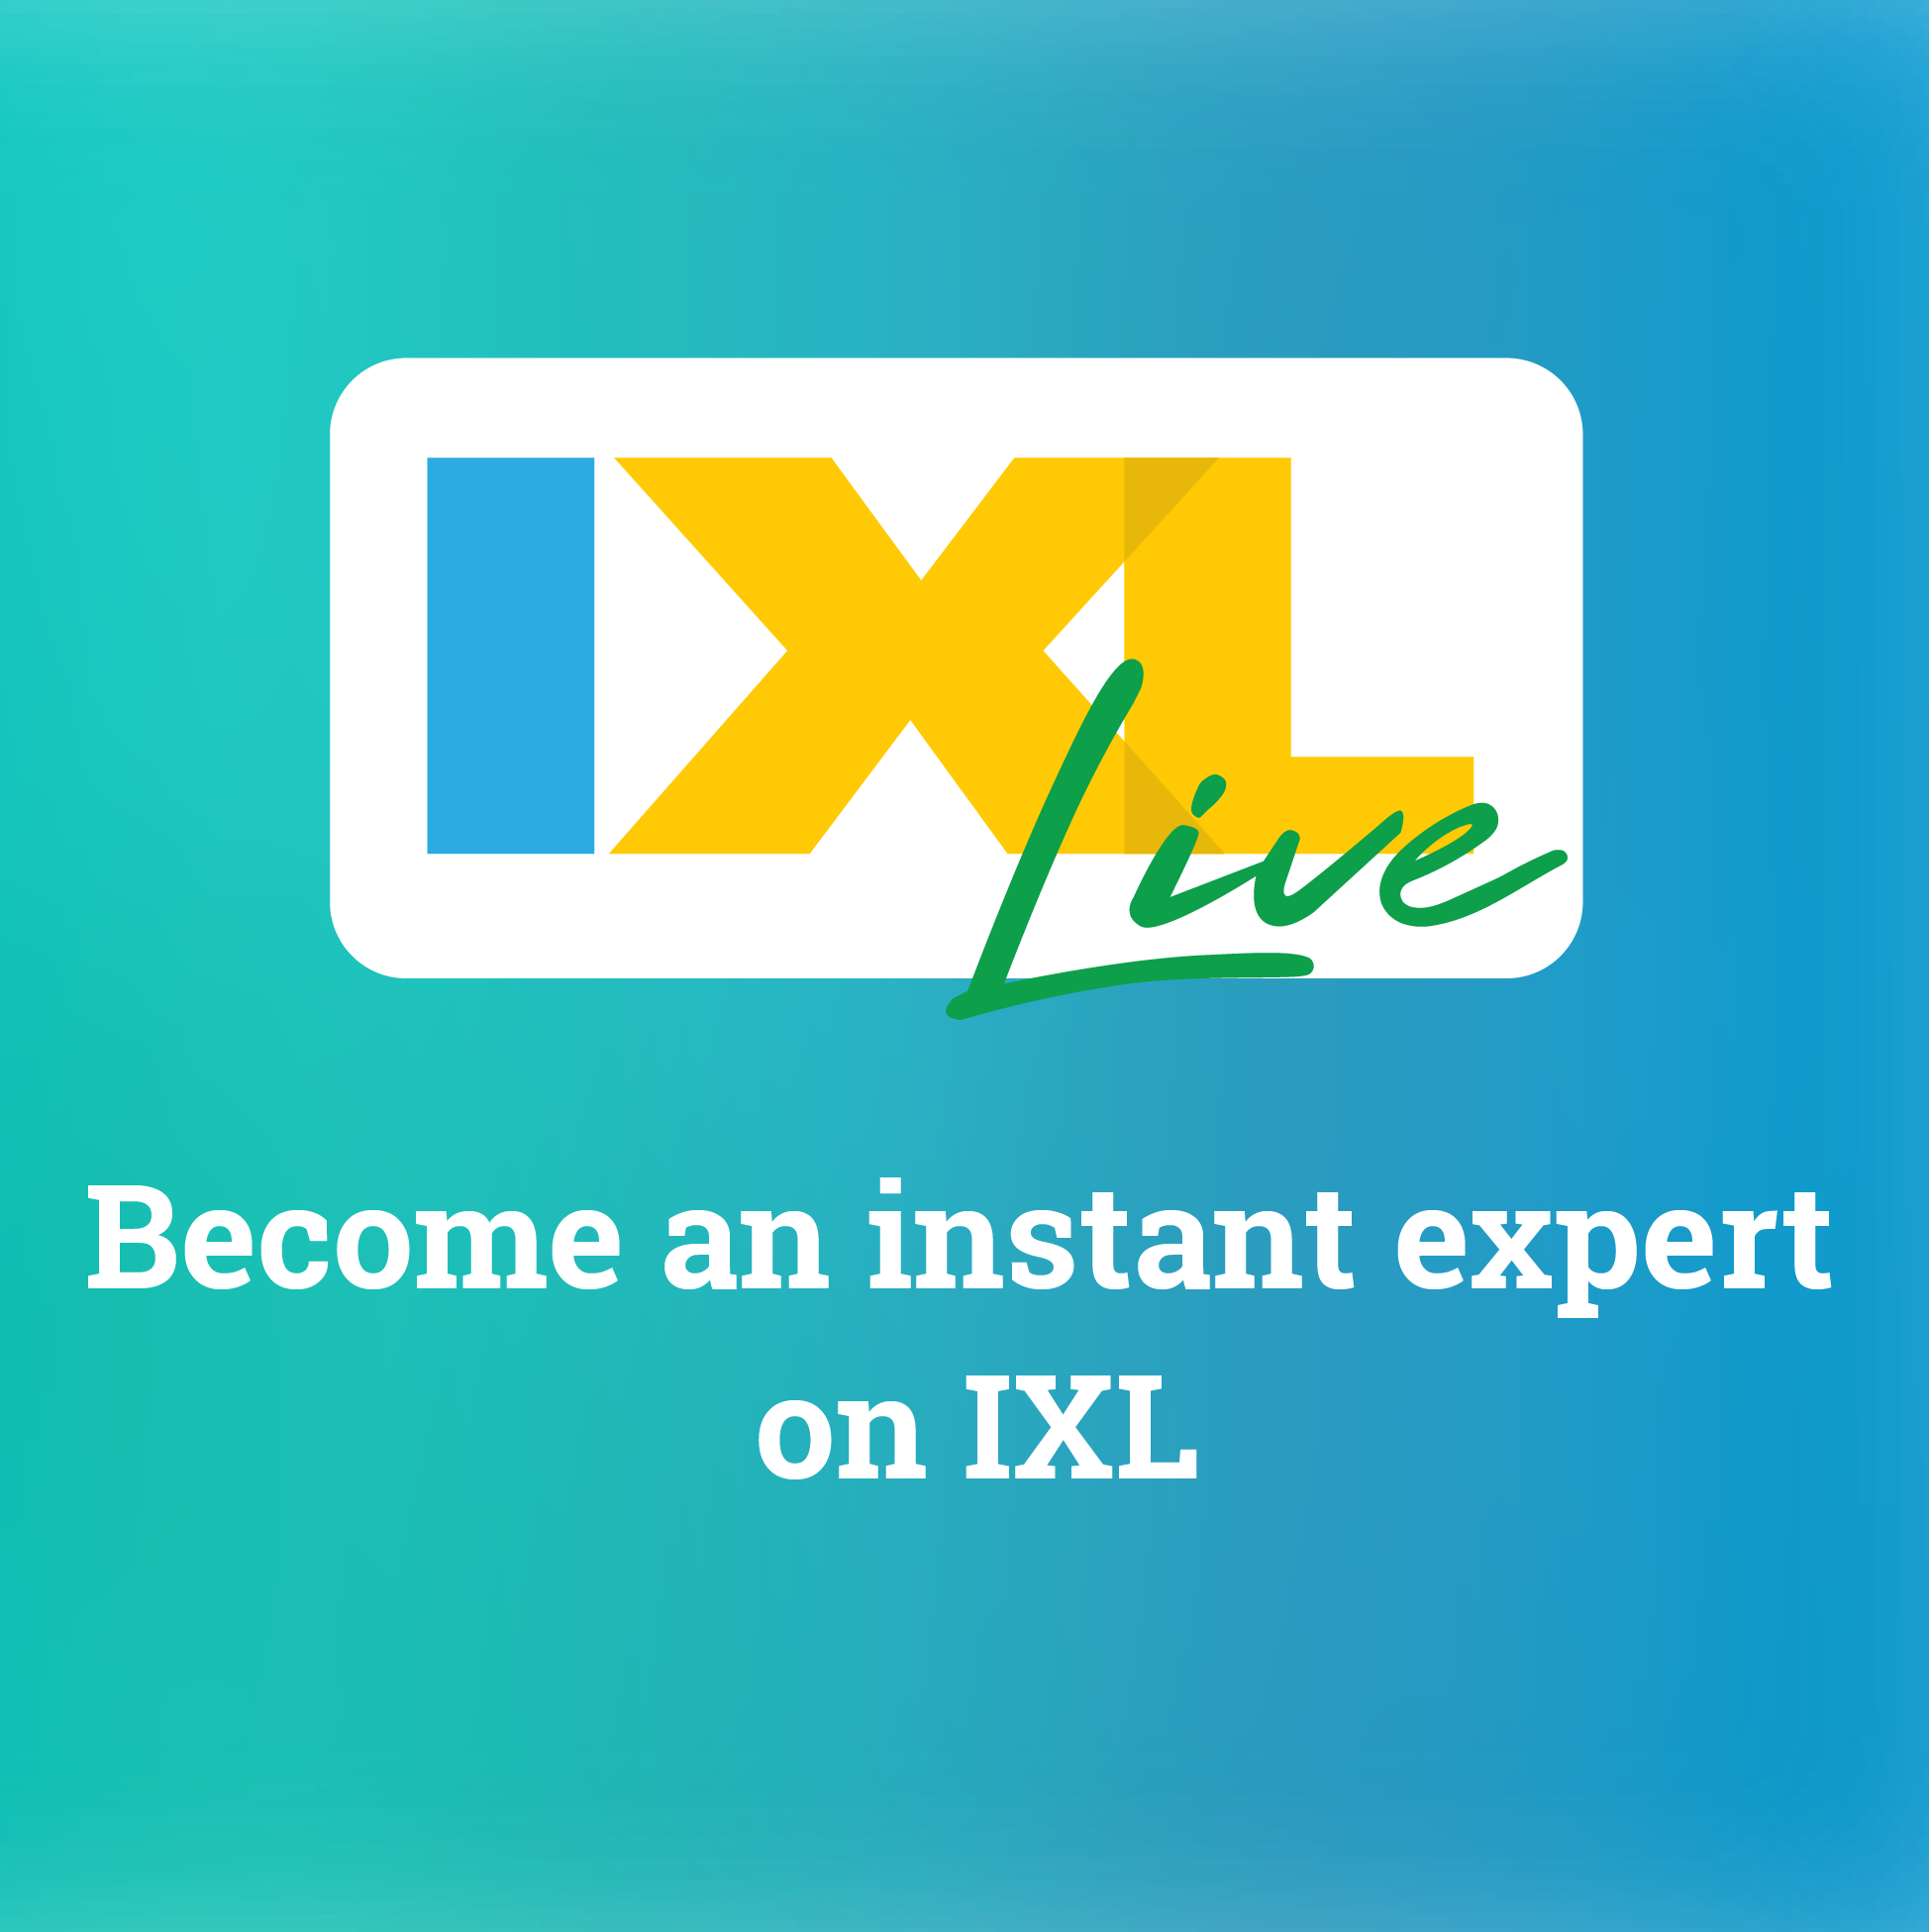 IXLLive is back for spring 2020! Join us to learn expert